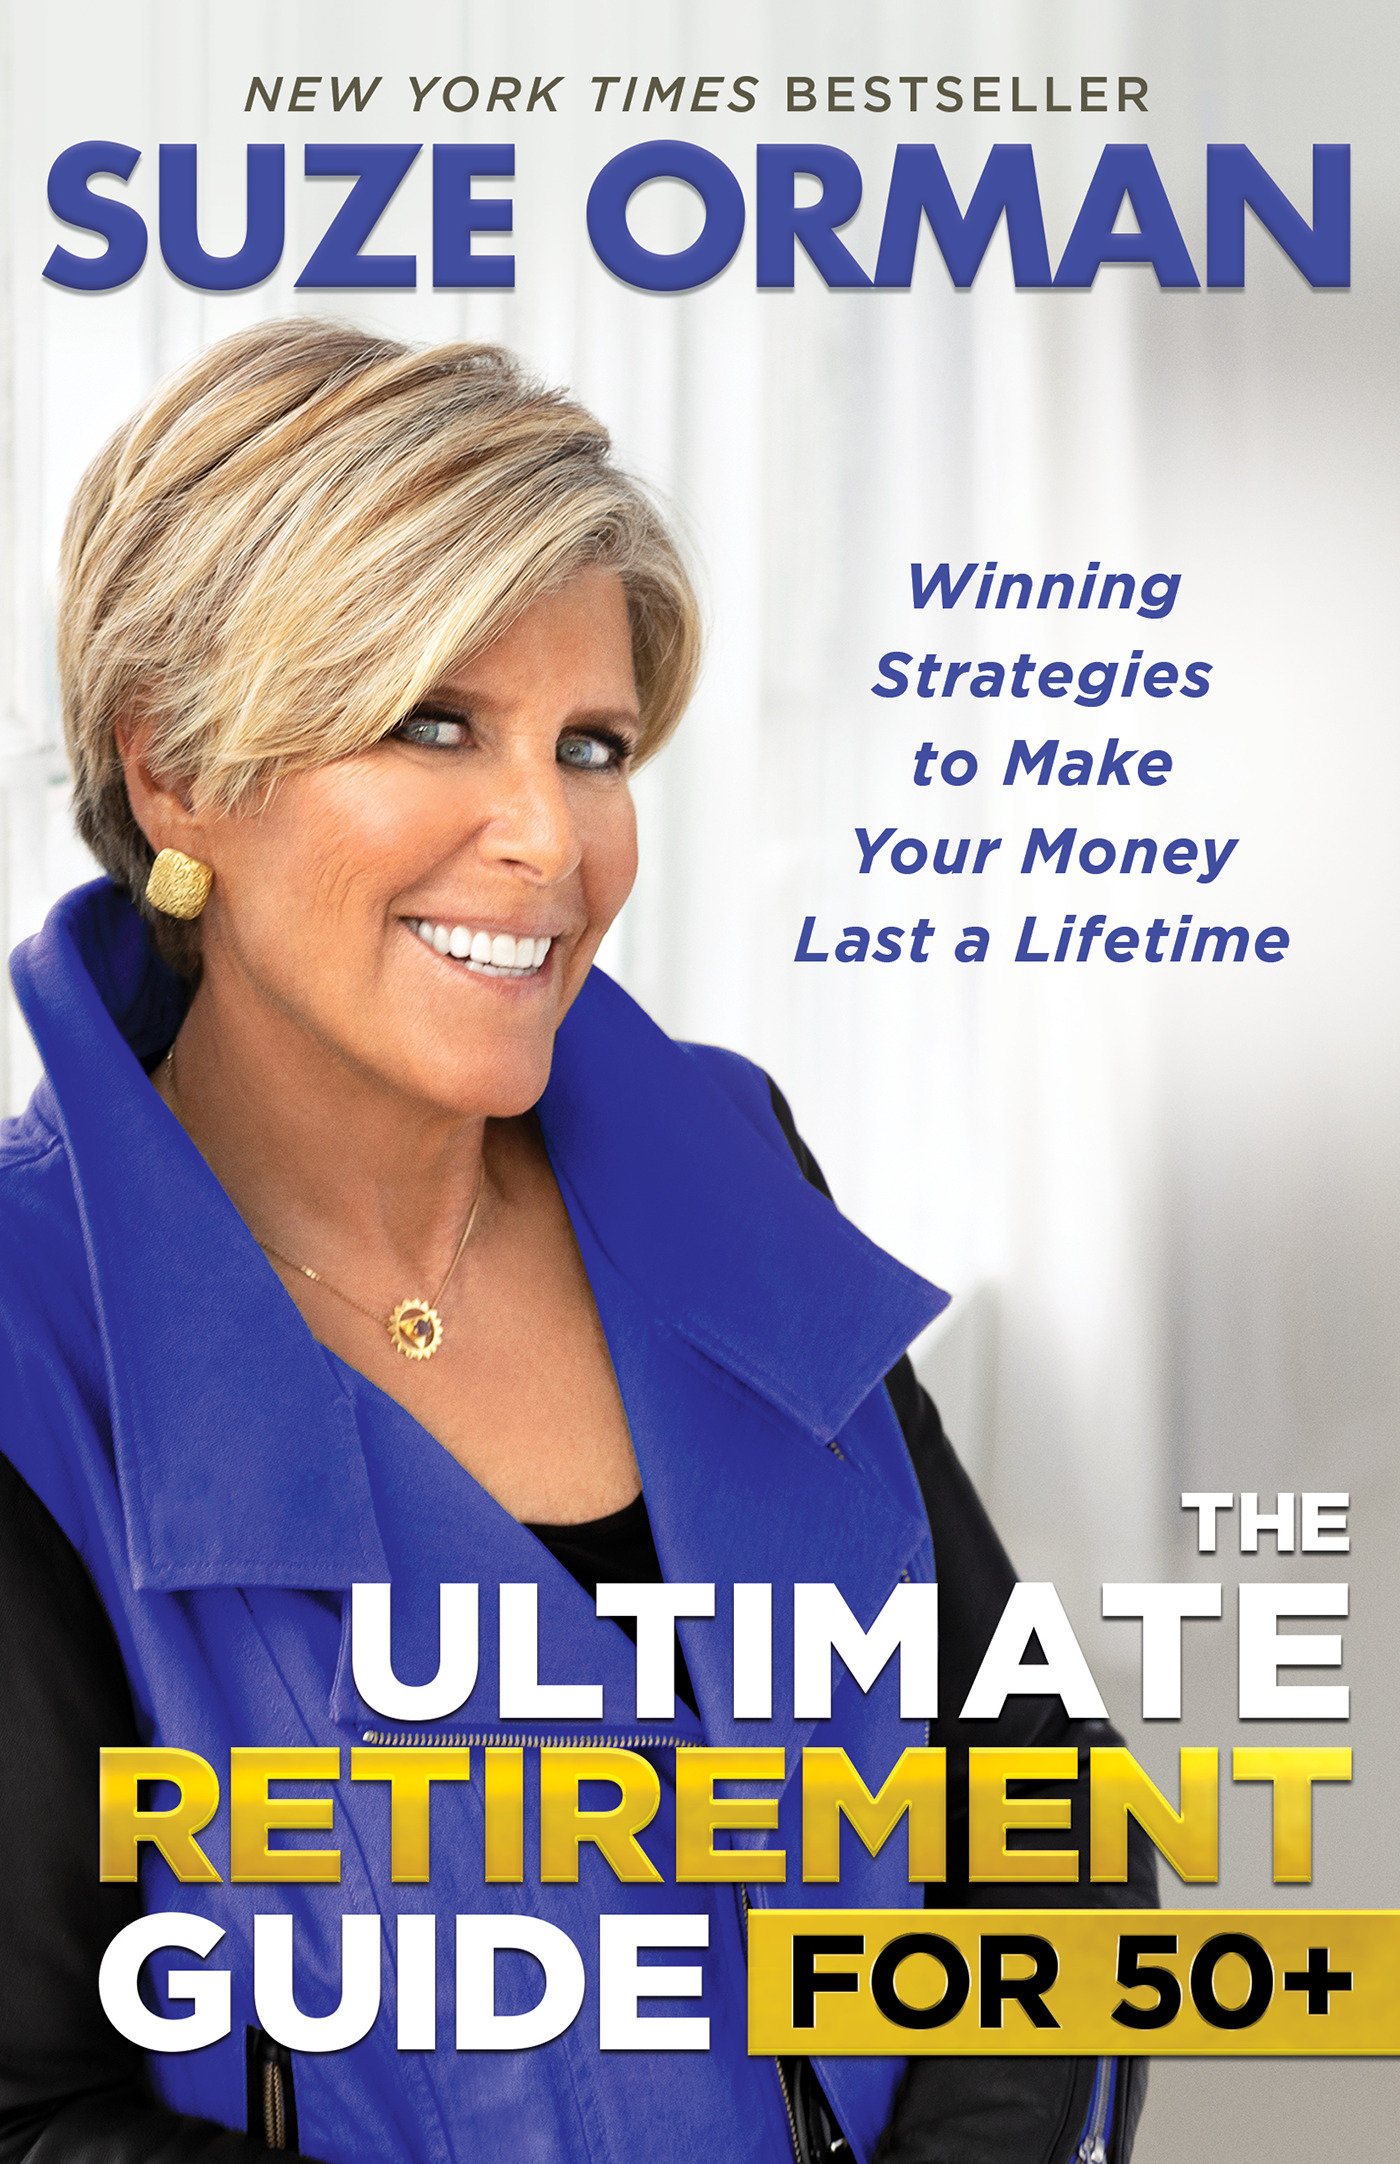 The Ultimate Retirement Guide for 50+ Winning Strategies to Make Your Money Last a Lifetime